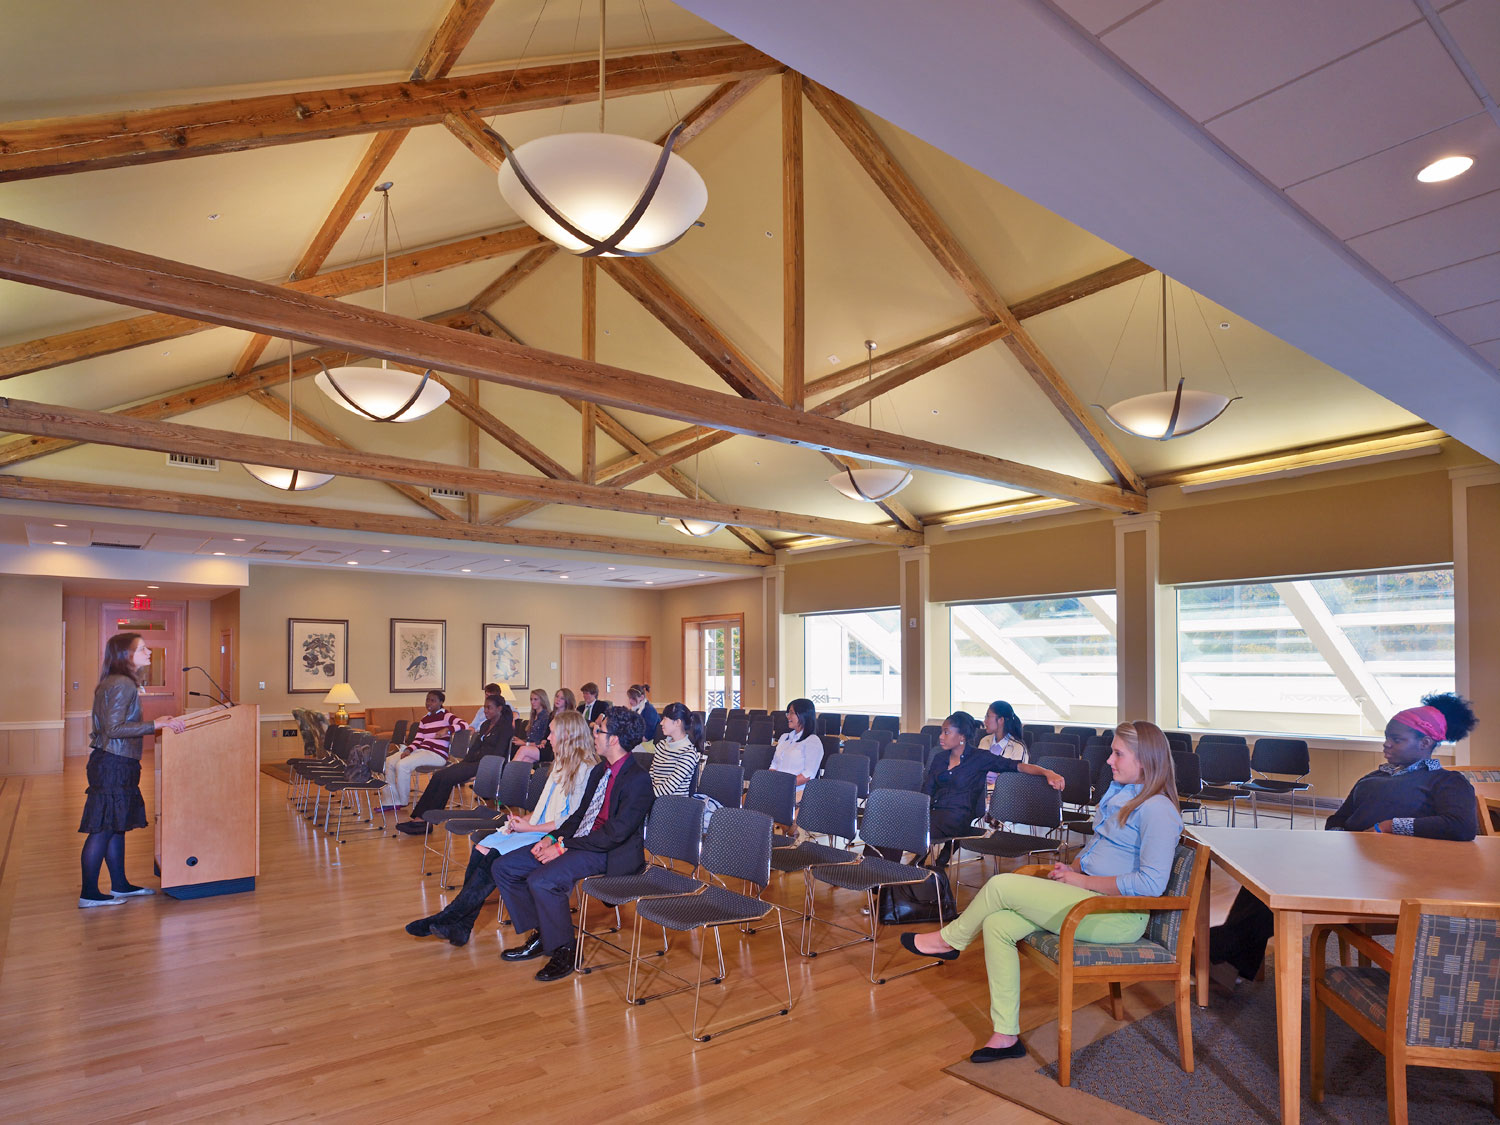 The multipurpose Great Room with large wood beams in the ceiling and a wood floor. Students and faculty sit in chairs facing a woman at a wood podium giving a speech.